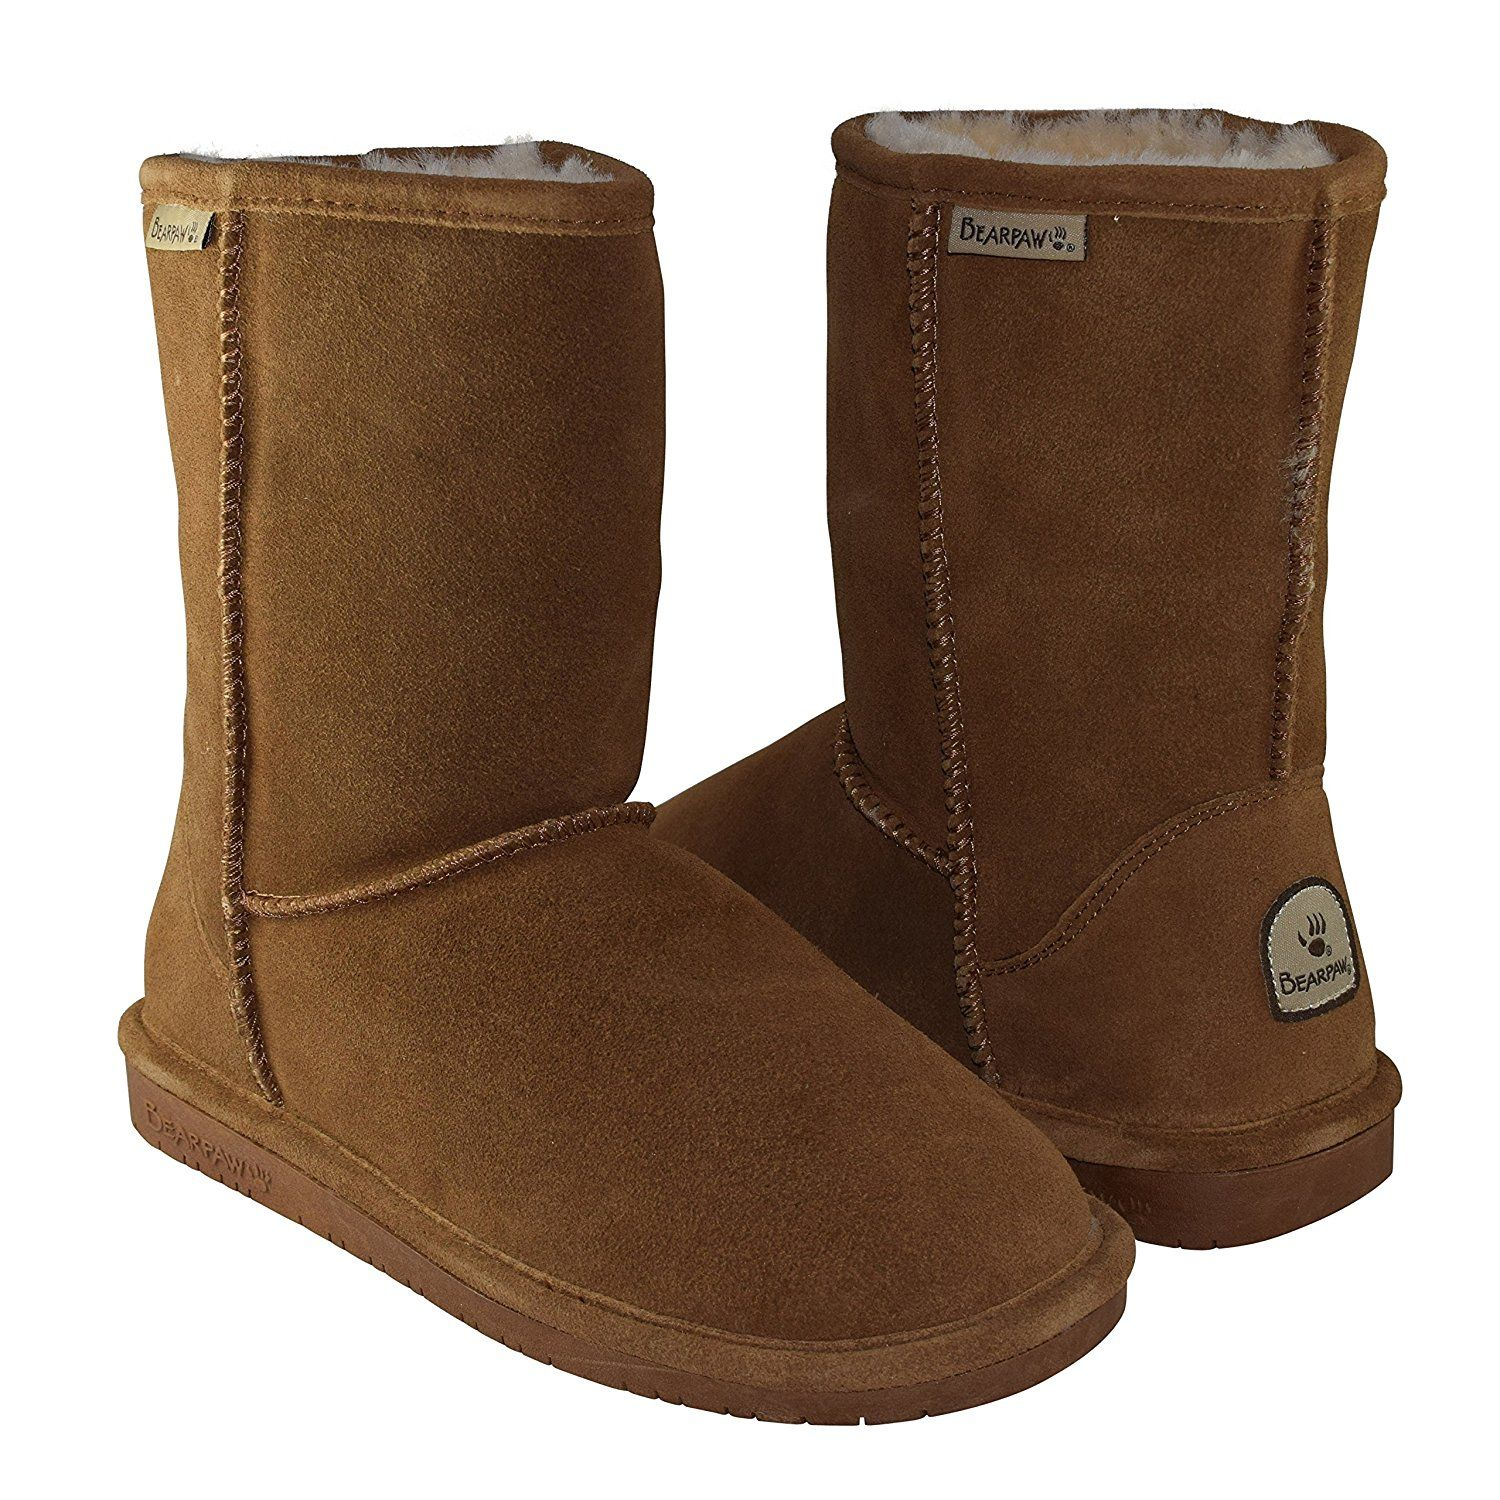 BEARPAW Women's Emma Short Shearling Boots 608-W Hickory (Chestnut) * Trust  me